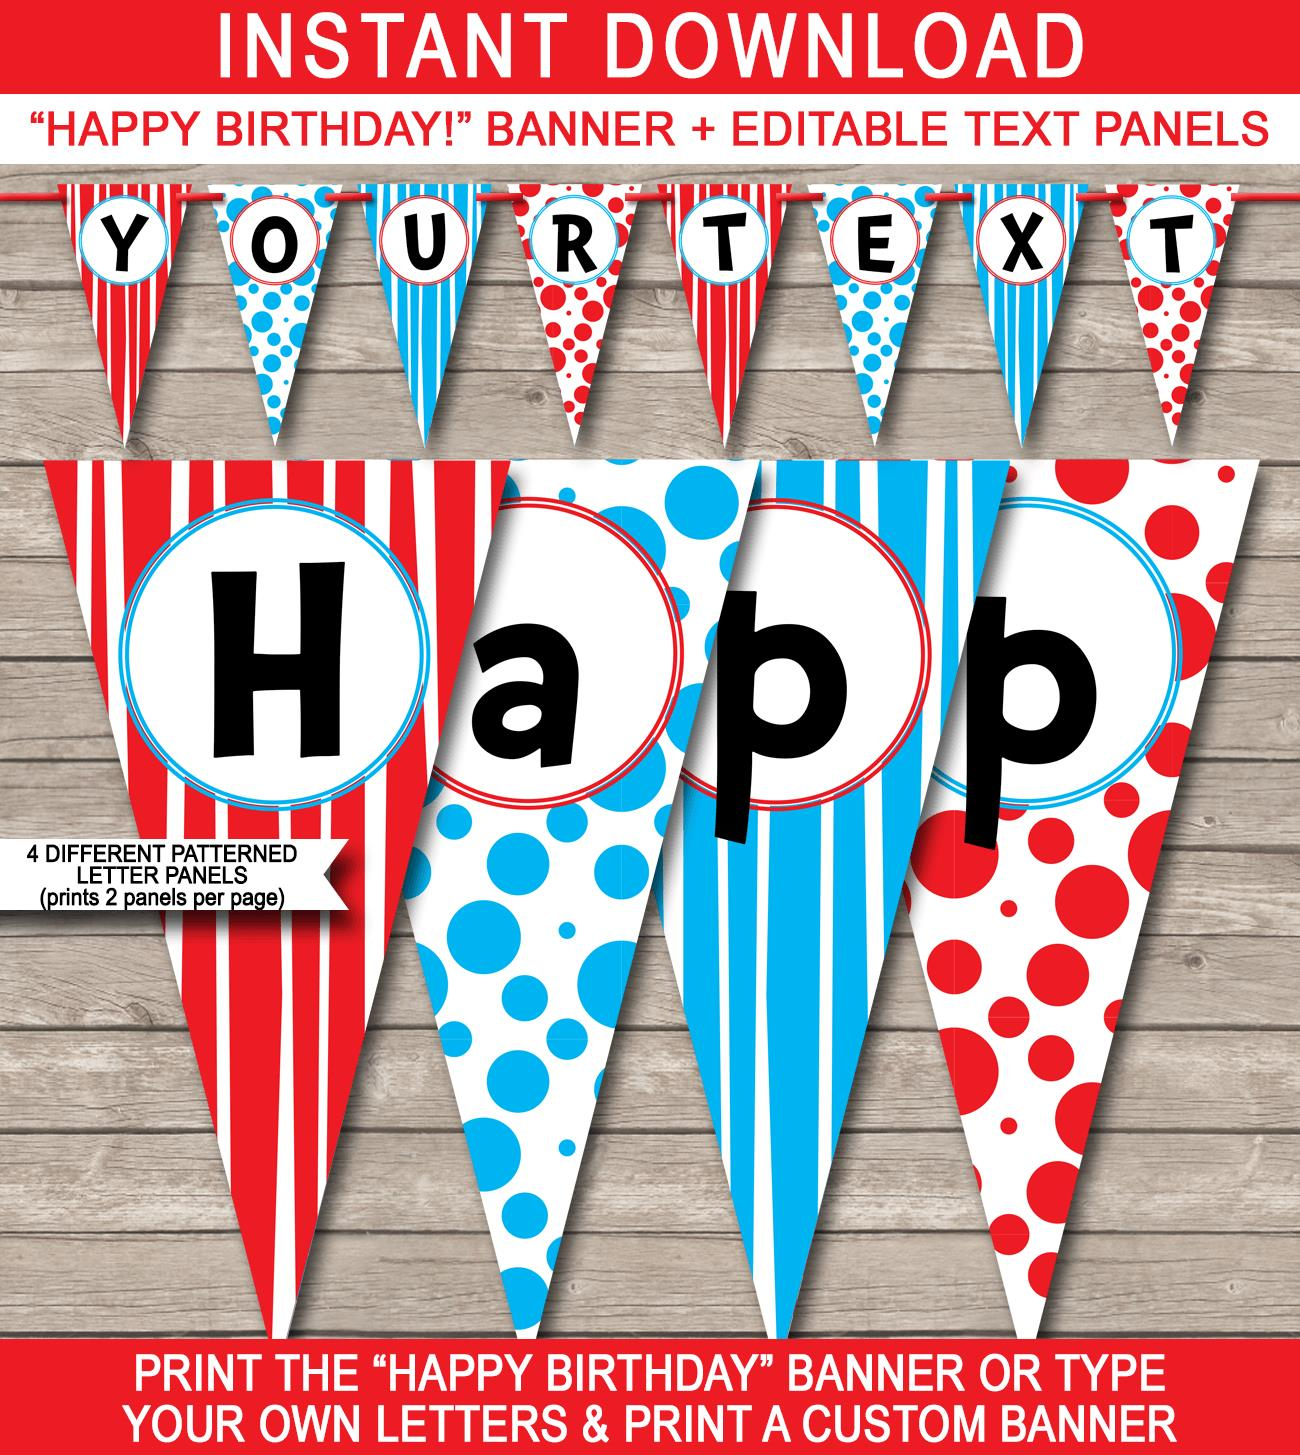 dr seuss happy birthday sign ; Dr-Seuss-Banner-Template-Happy-Birthday-Banner-editable-text